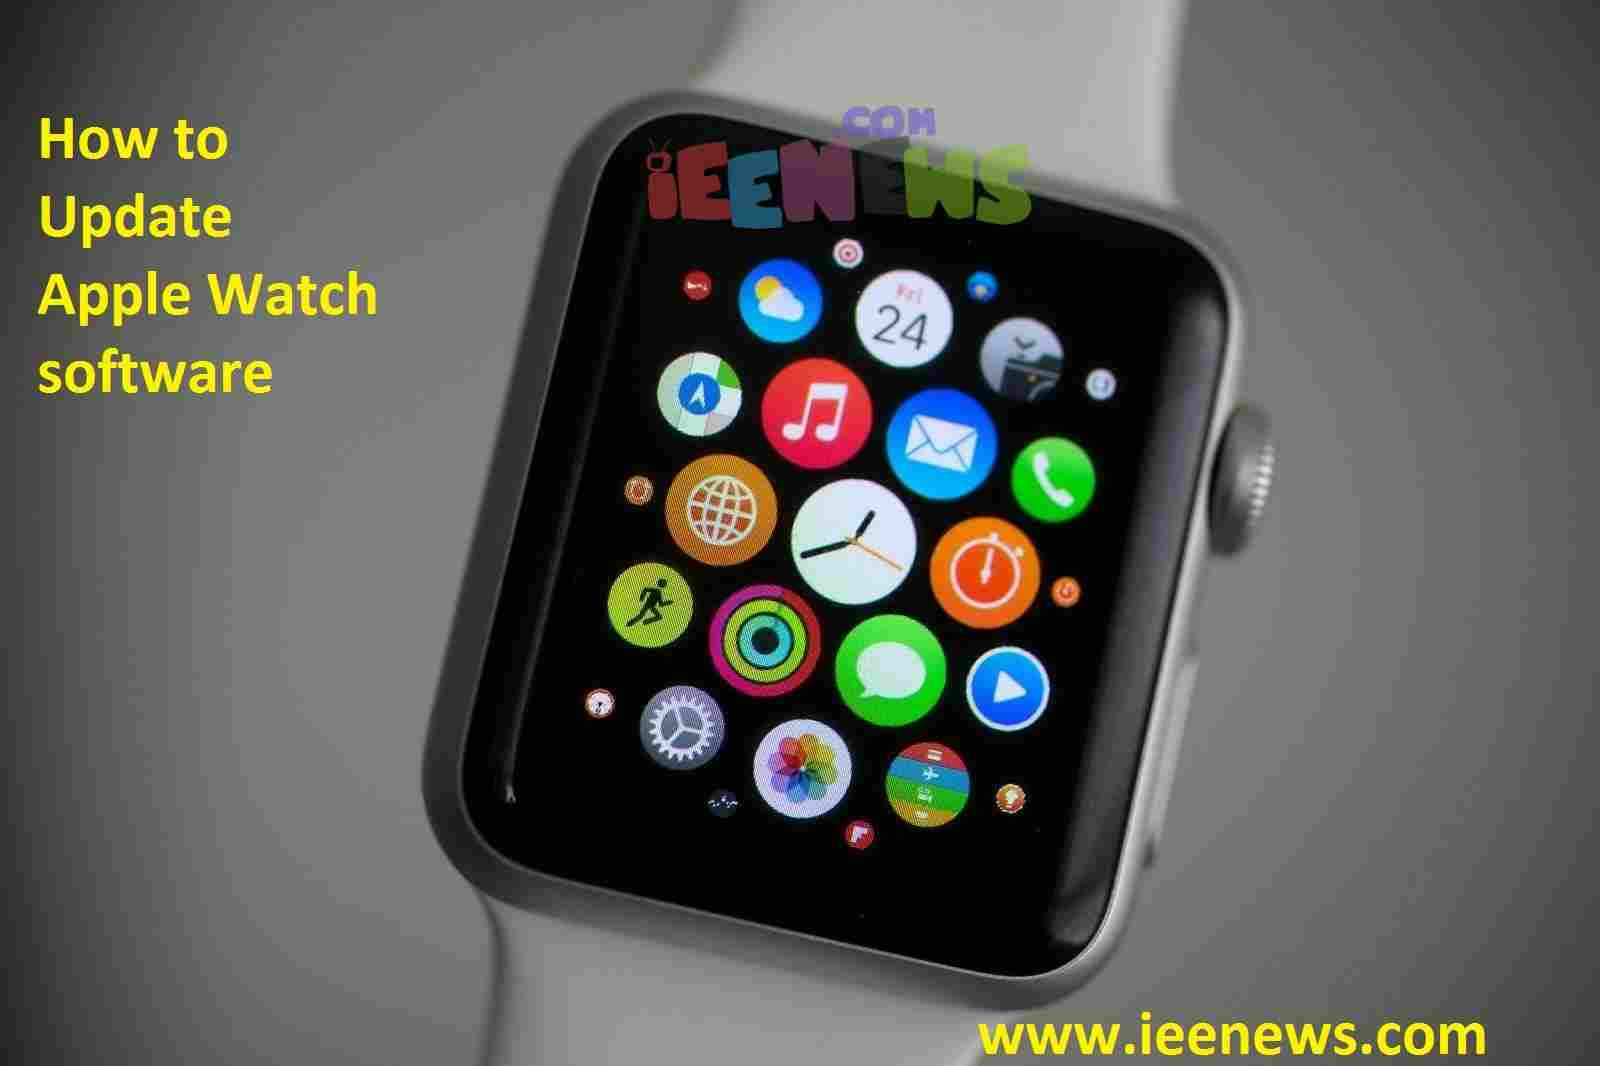 How to Update Apple Watch software